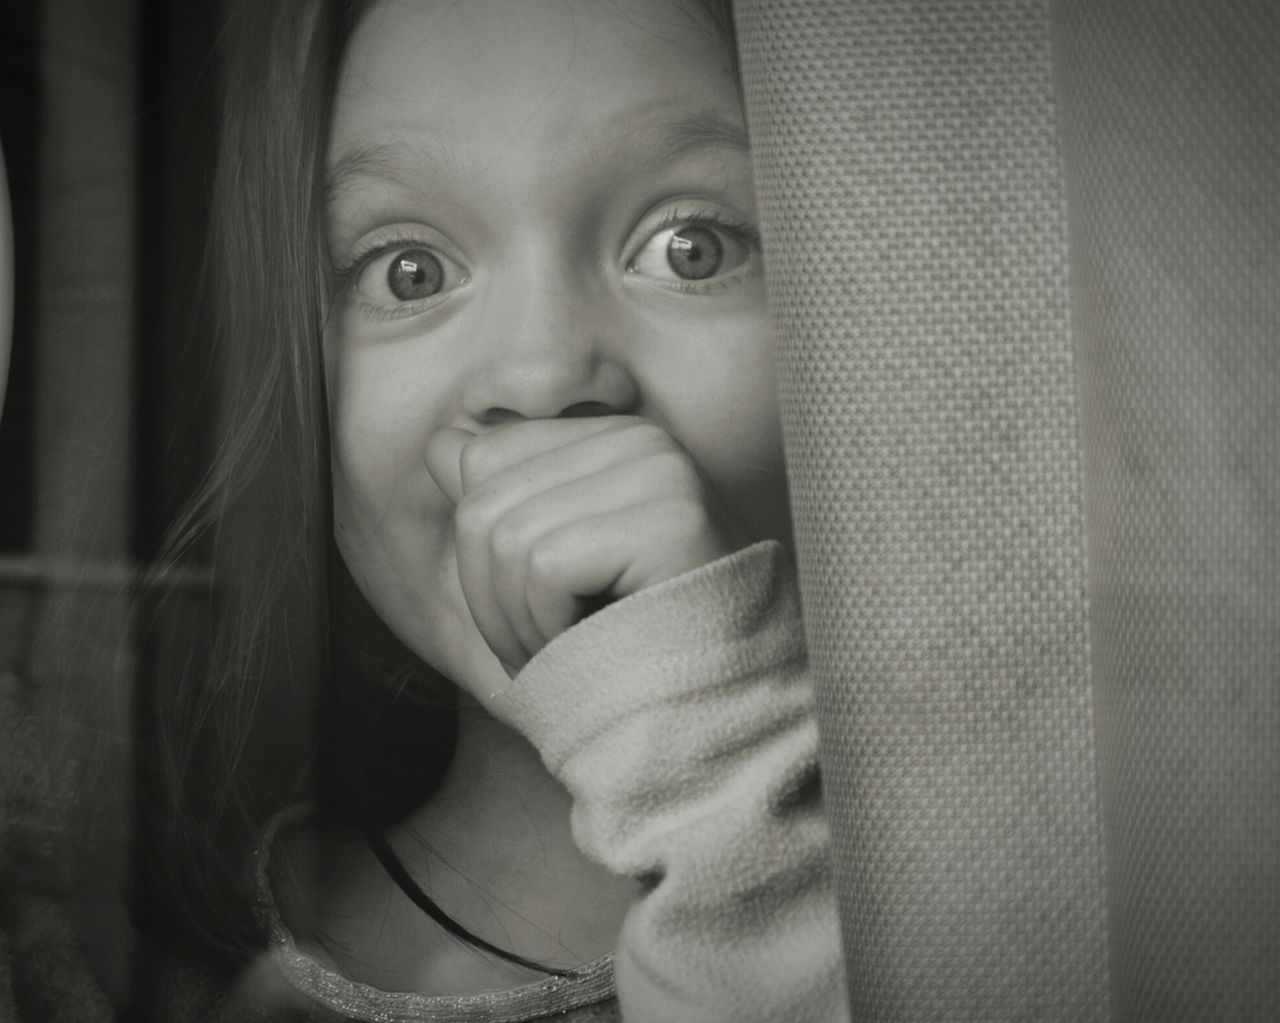 Close-Up Portrait Of Surprised Girl With Hand Covering Mouth By Curtain